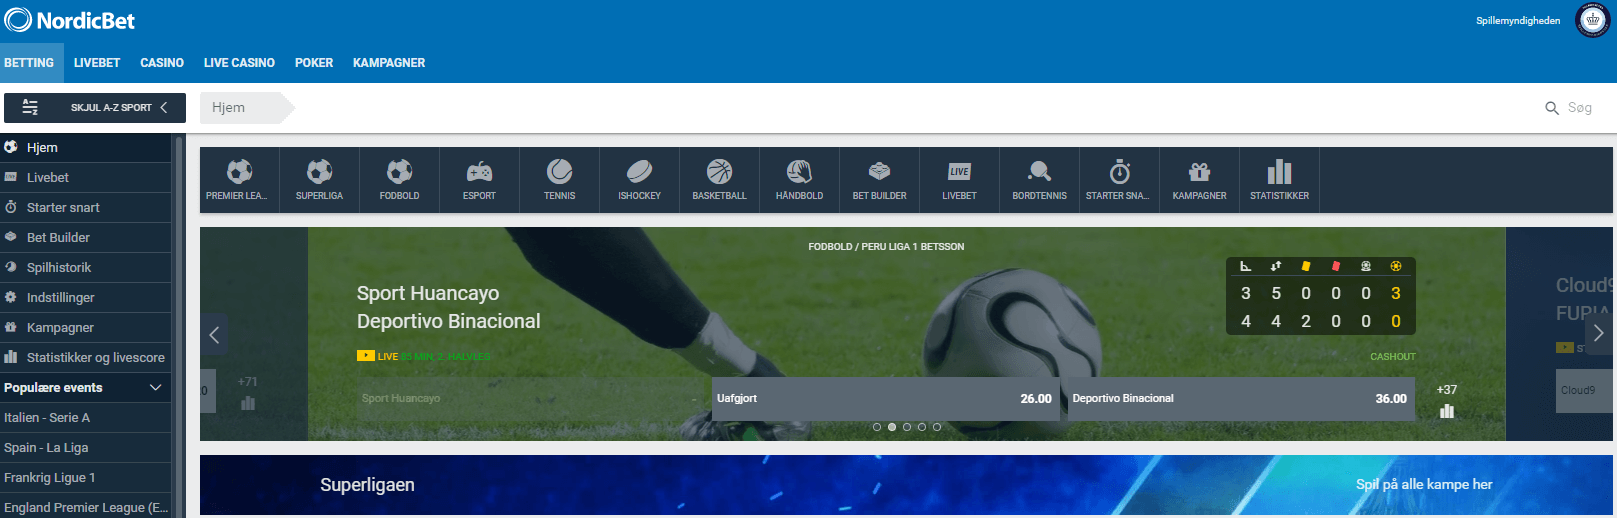 NordicBet sports betting